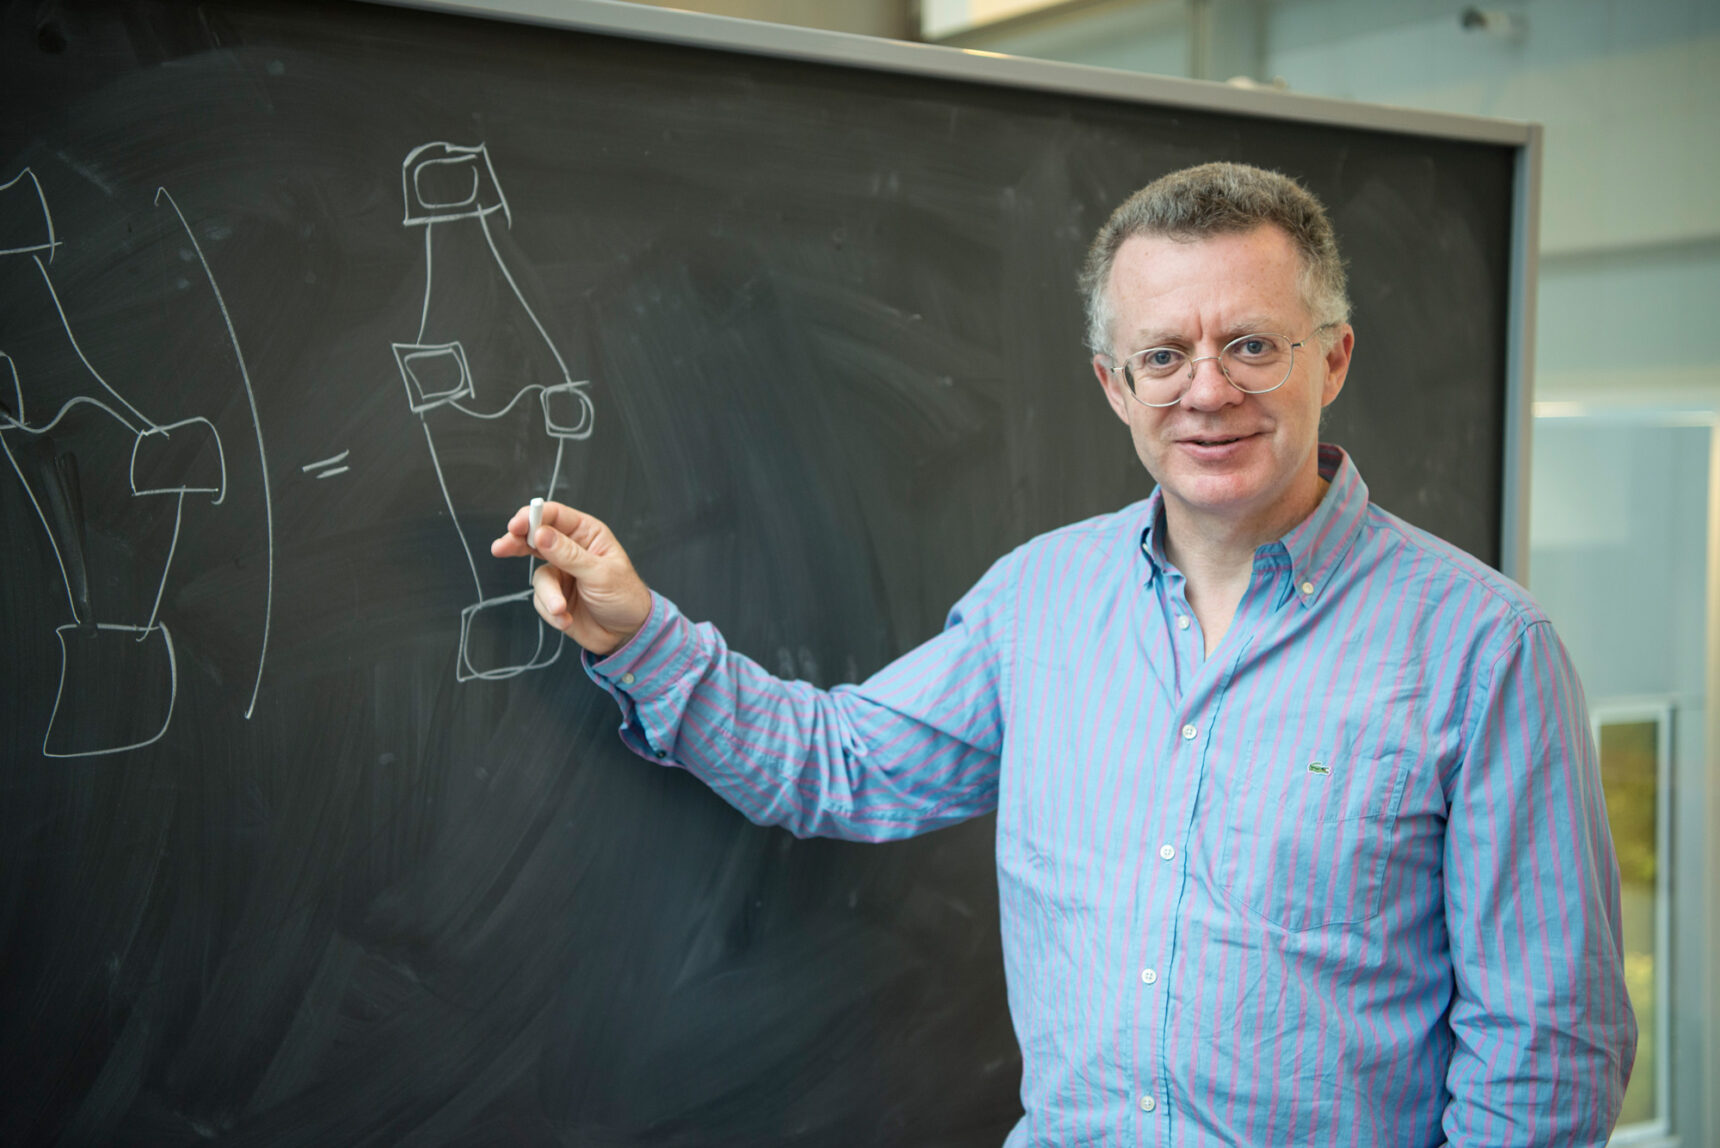 A man with curly gray hair and wireframe glasses smiles for the camera while holding a piece of chalk up to a blackboard.